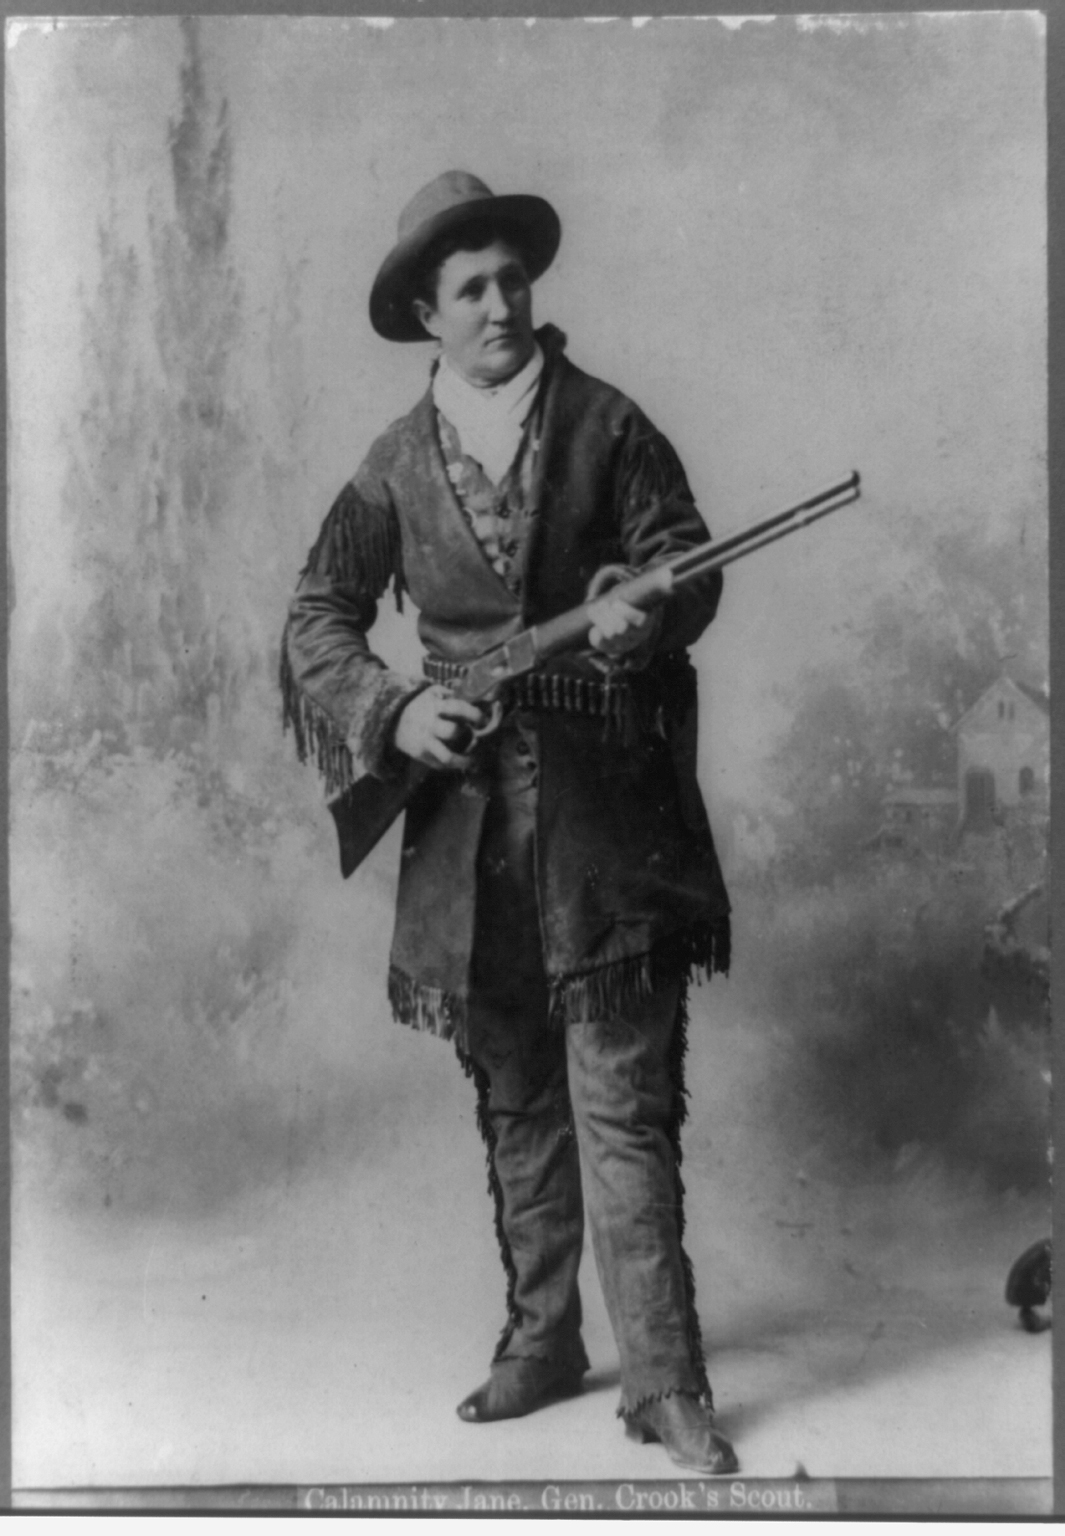 Photograph of Calamity Jane.